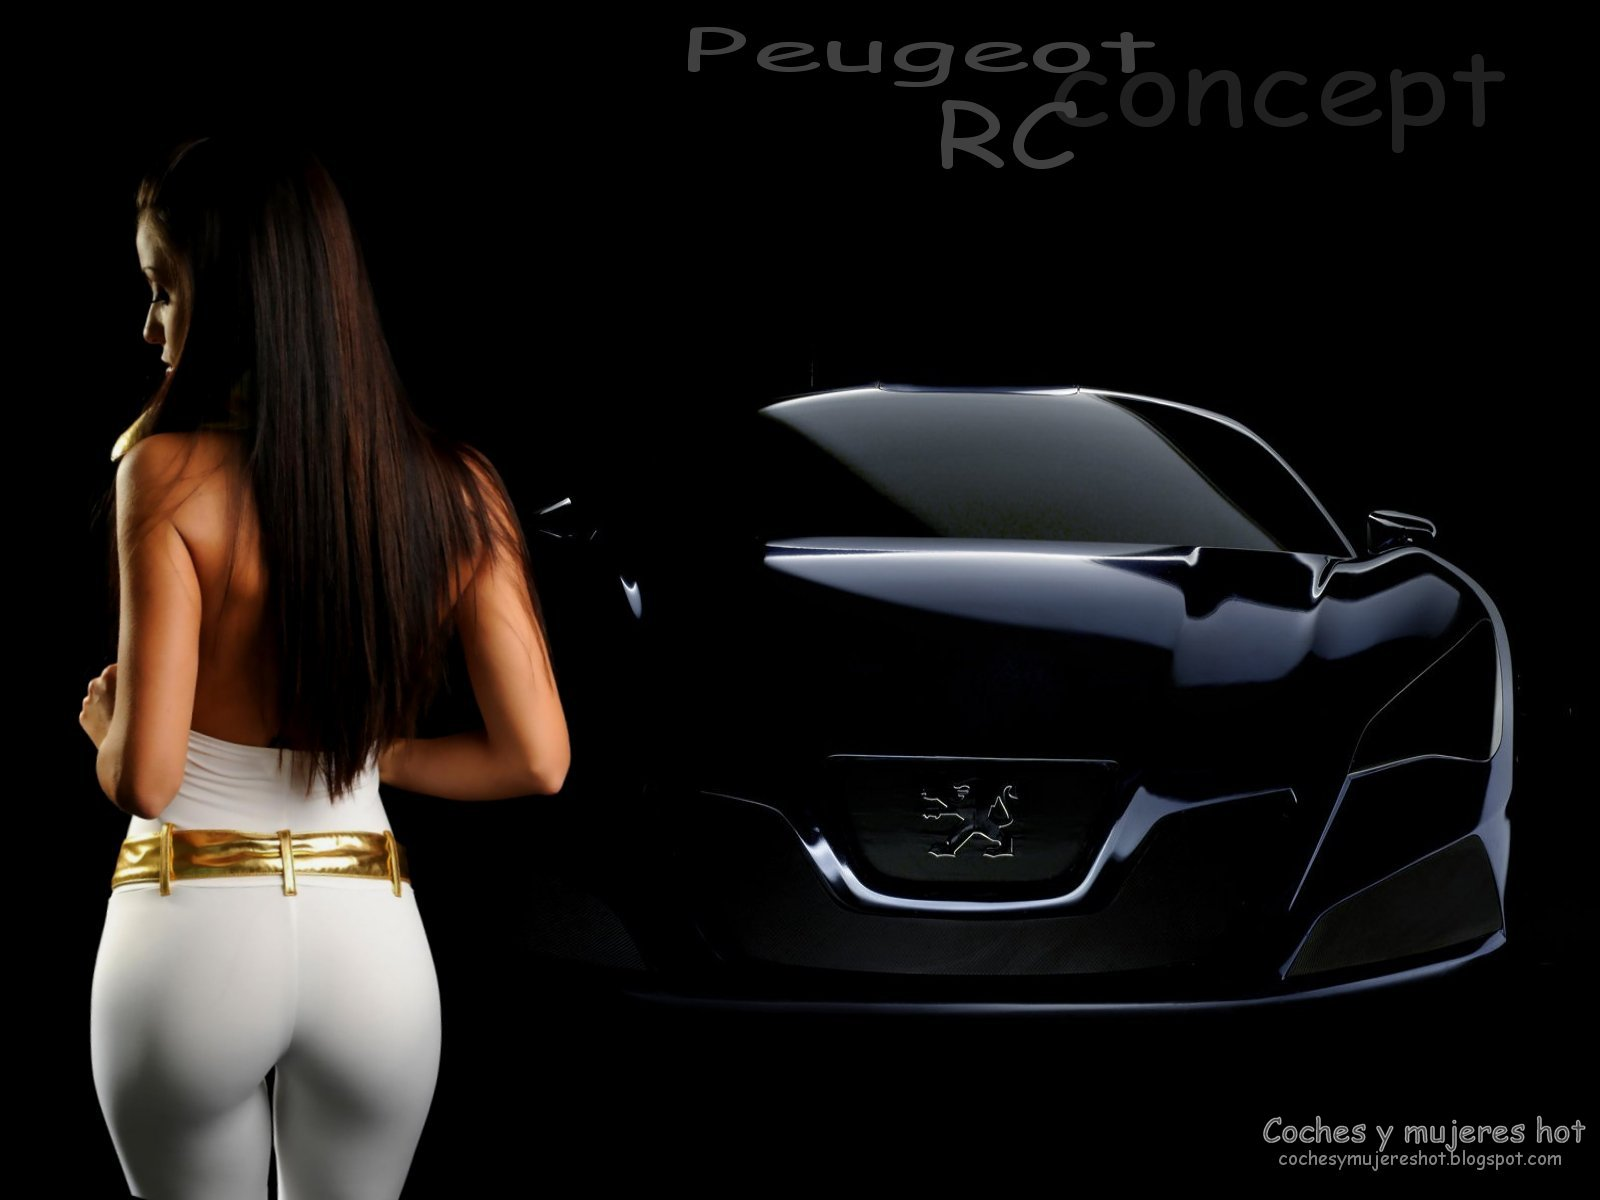 http://2.bp.blogspot.com/-_TfPj6JEpjI/TuYu4Yt006I/AAAAAAAAAk4/i-dS4QQULl0/s1600/peugeot-rc-concept-latina-car-hd-coches-mujeres-carros-wallpaper%2B593%2B%255Bcochesymujeresa.blogspot.com%255D.jpg